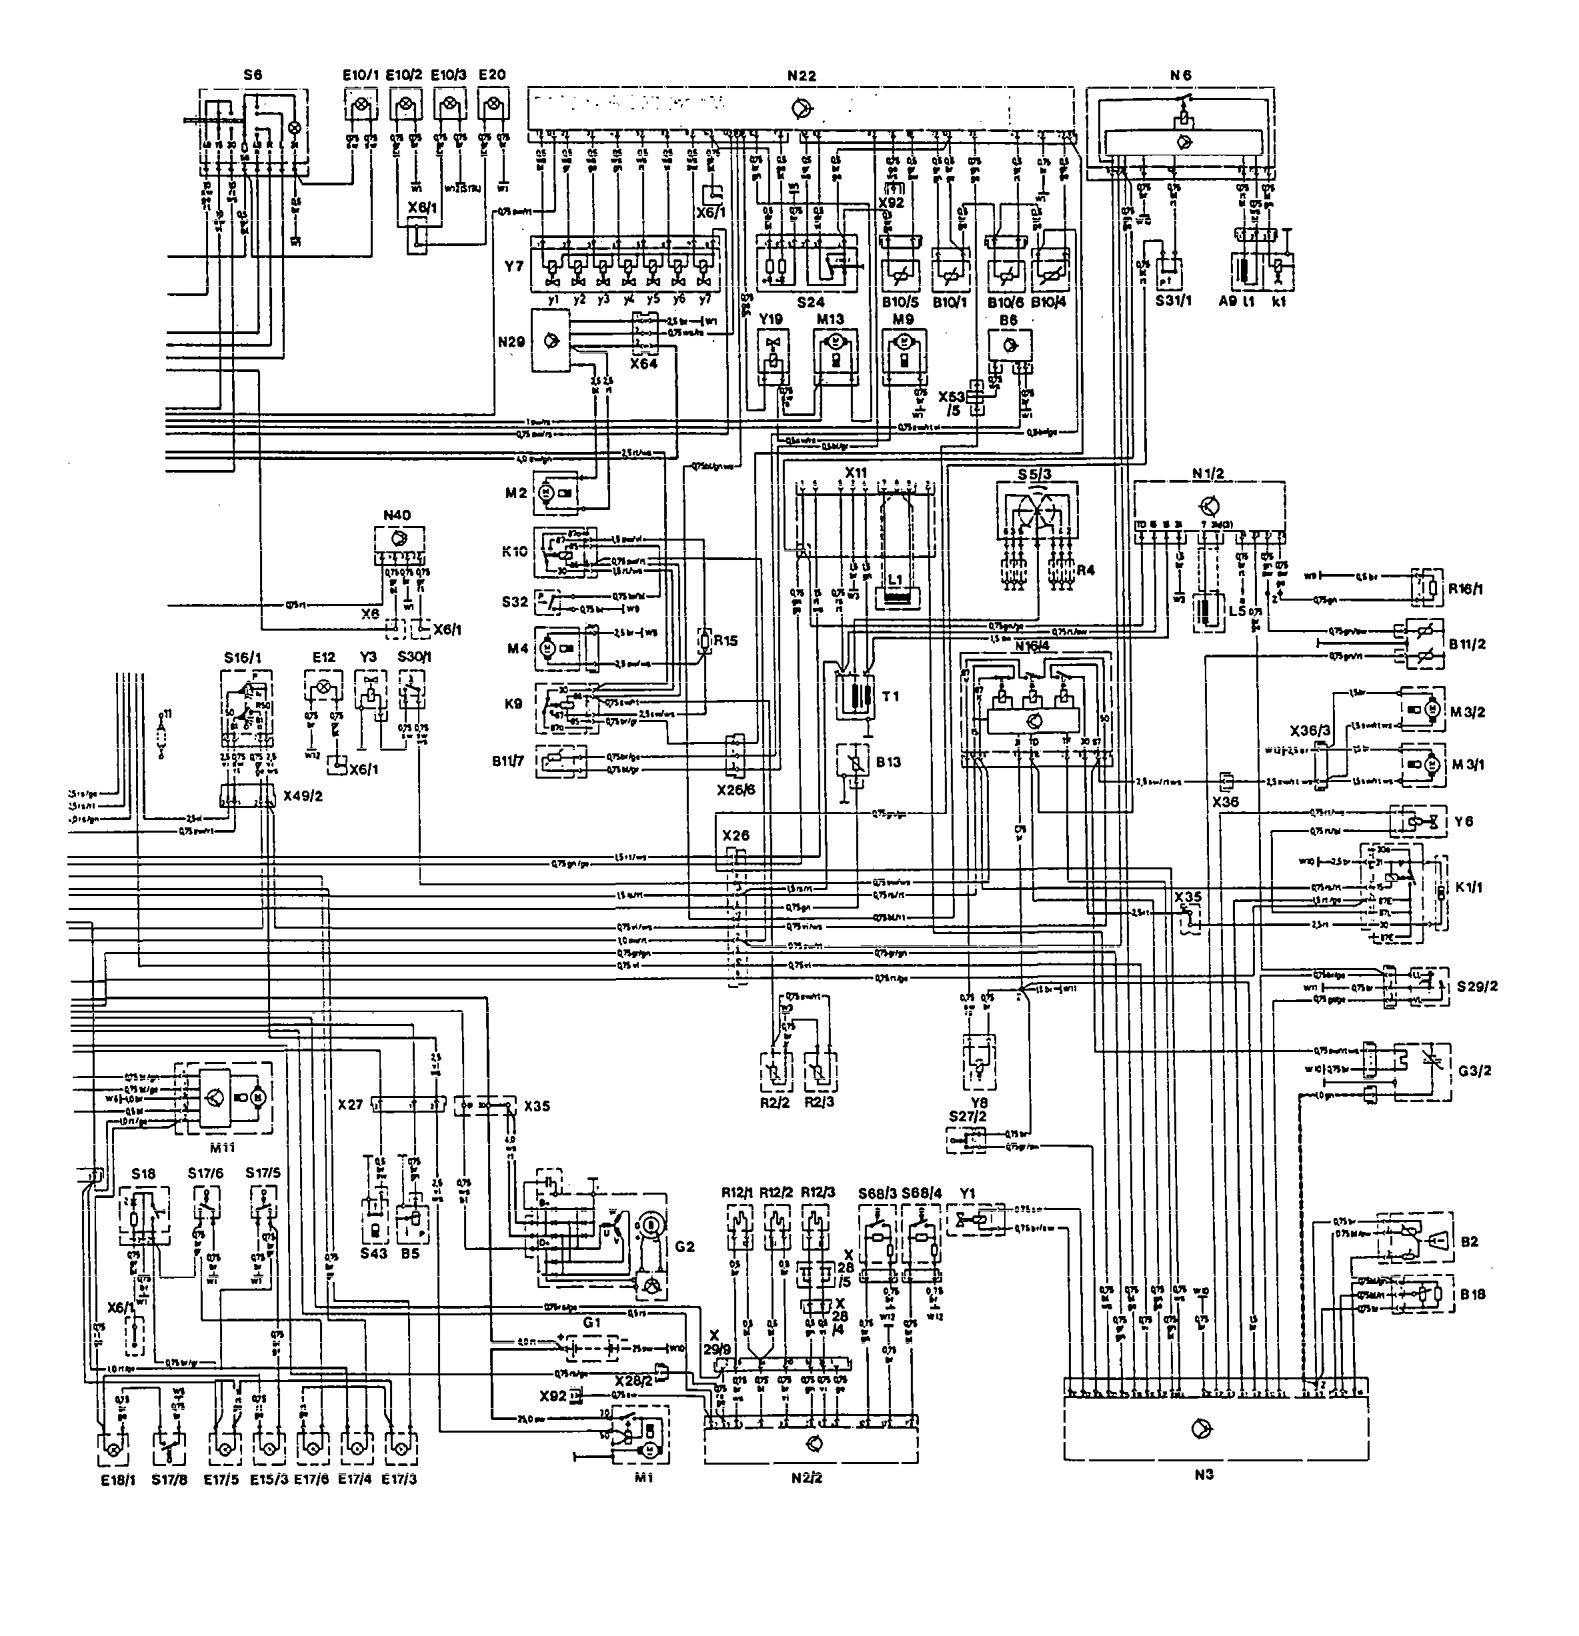 hight resolution of mercedes benz 300e 1992 1993 wiring diagrams hvac controls